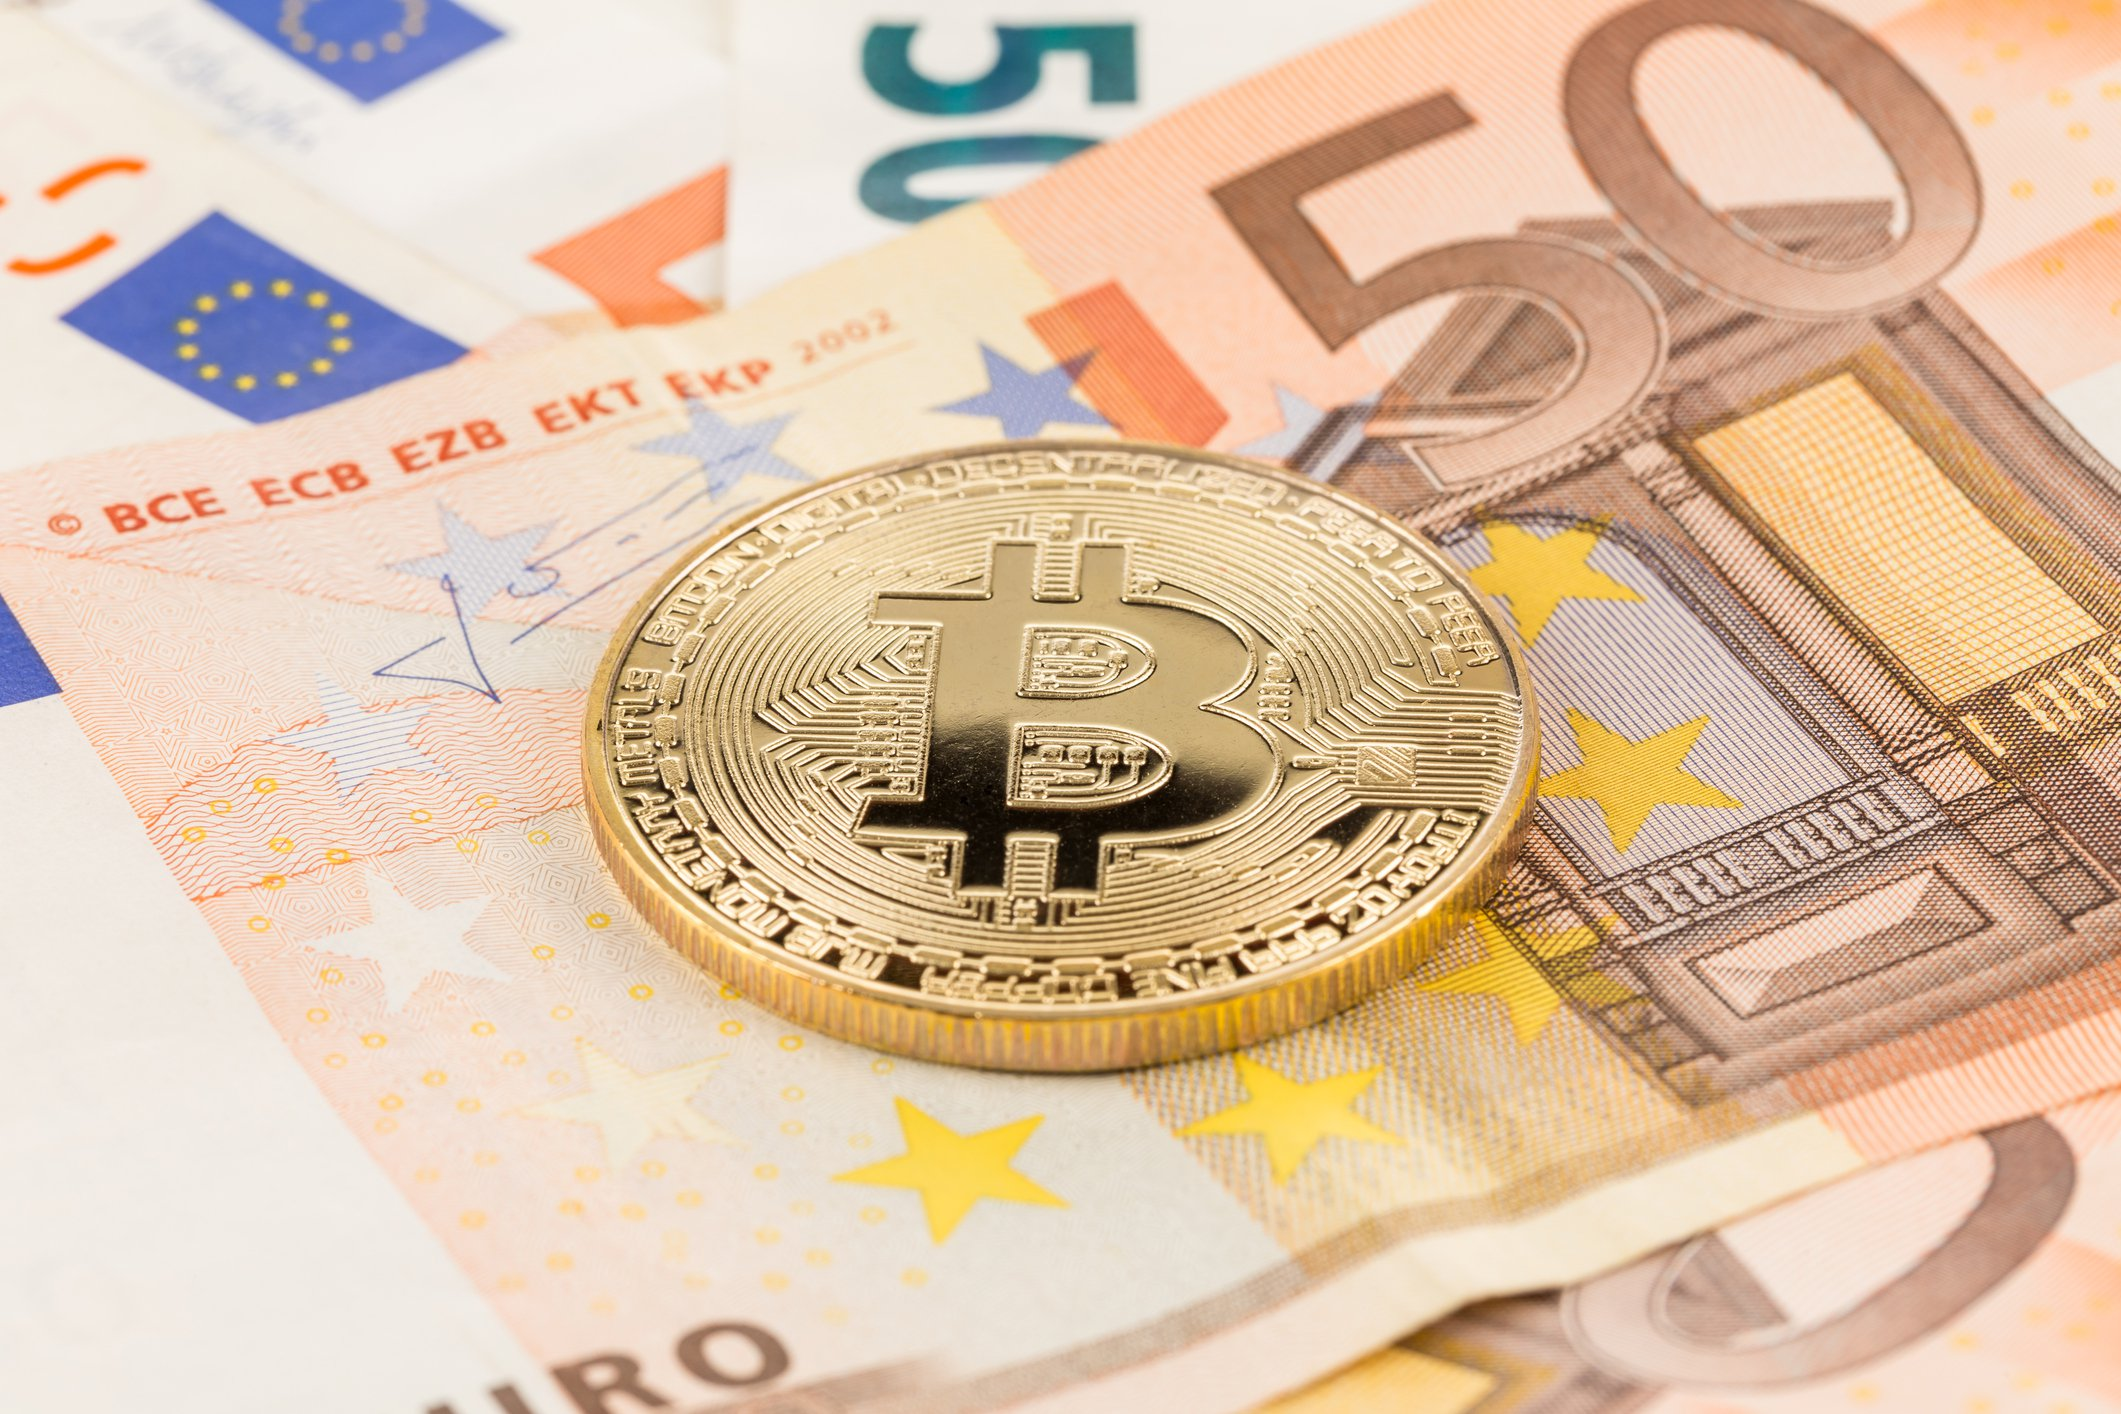 Europe threatens cryptocurrency clampdown as Bitcoin price soars above $10,000